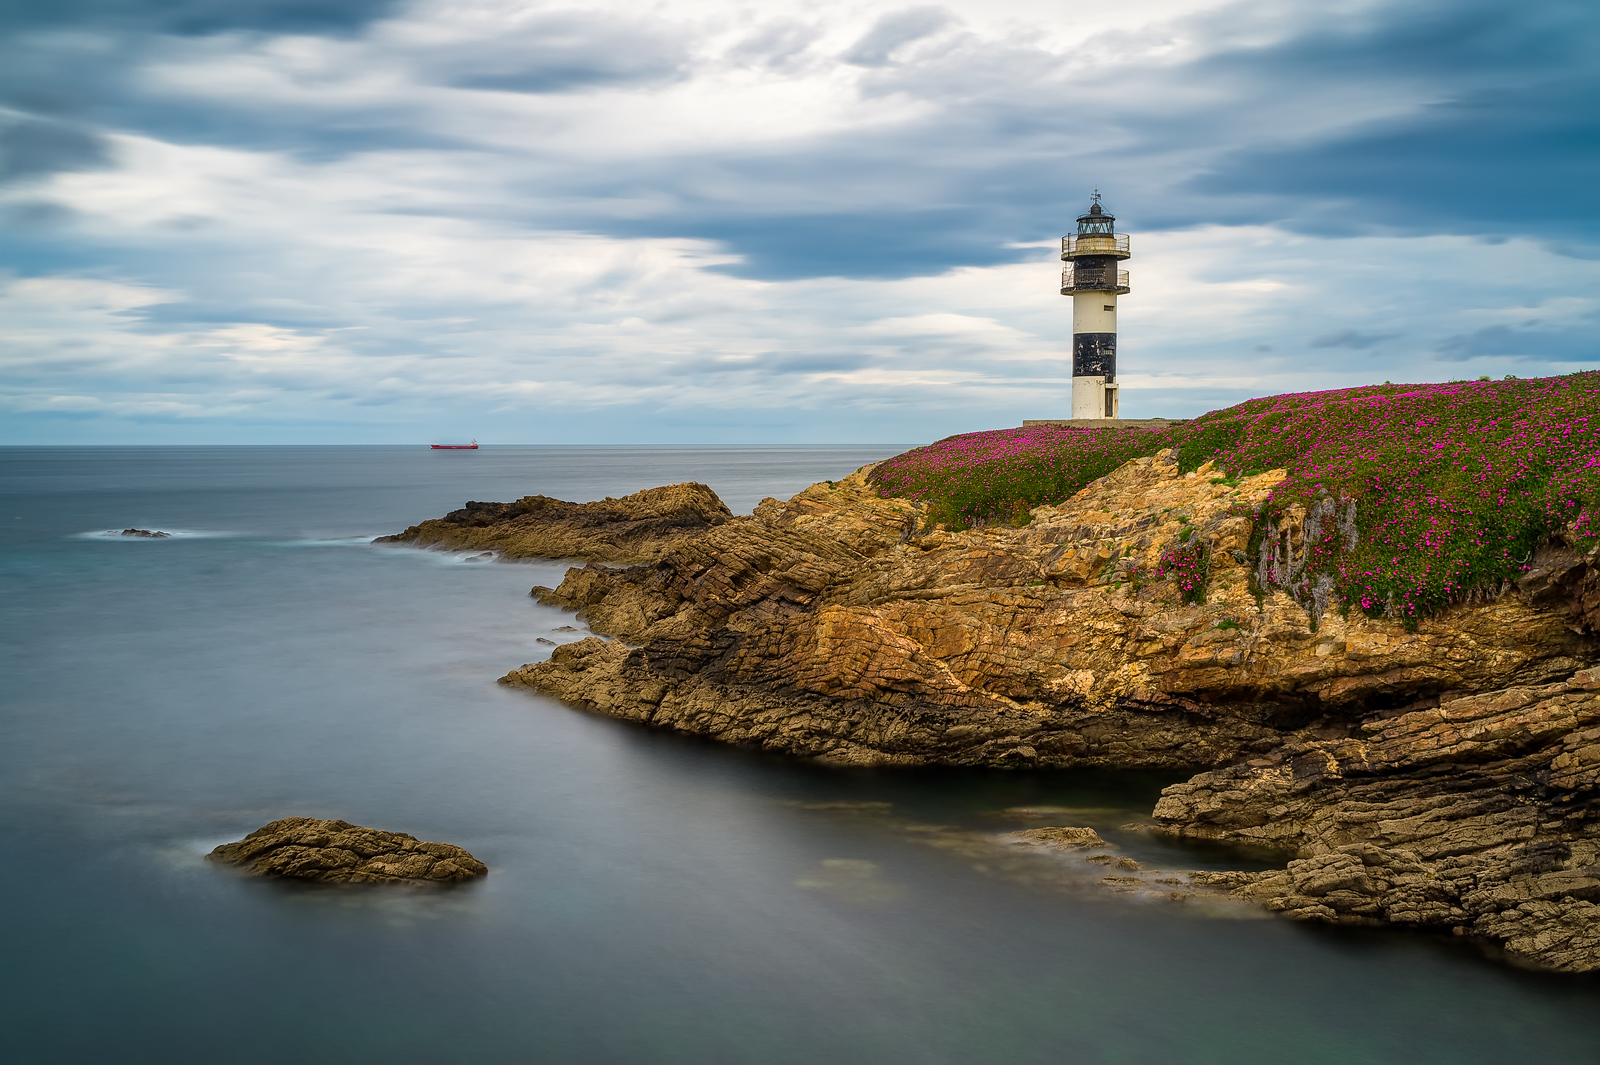 The peaceful lighthouse